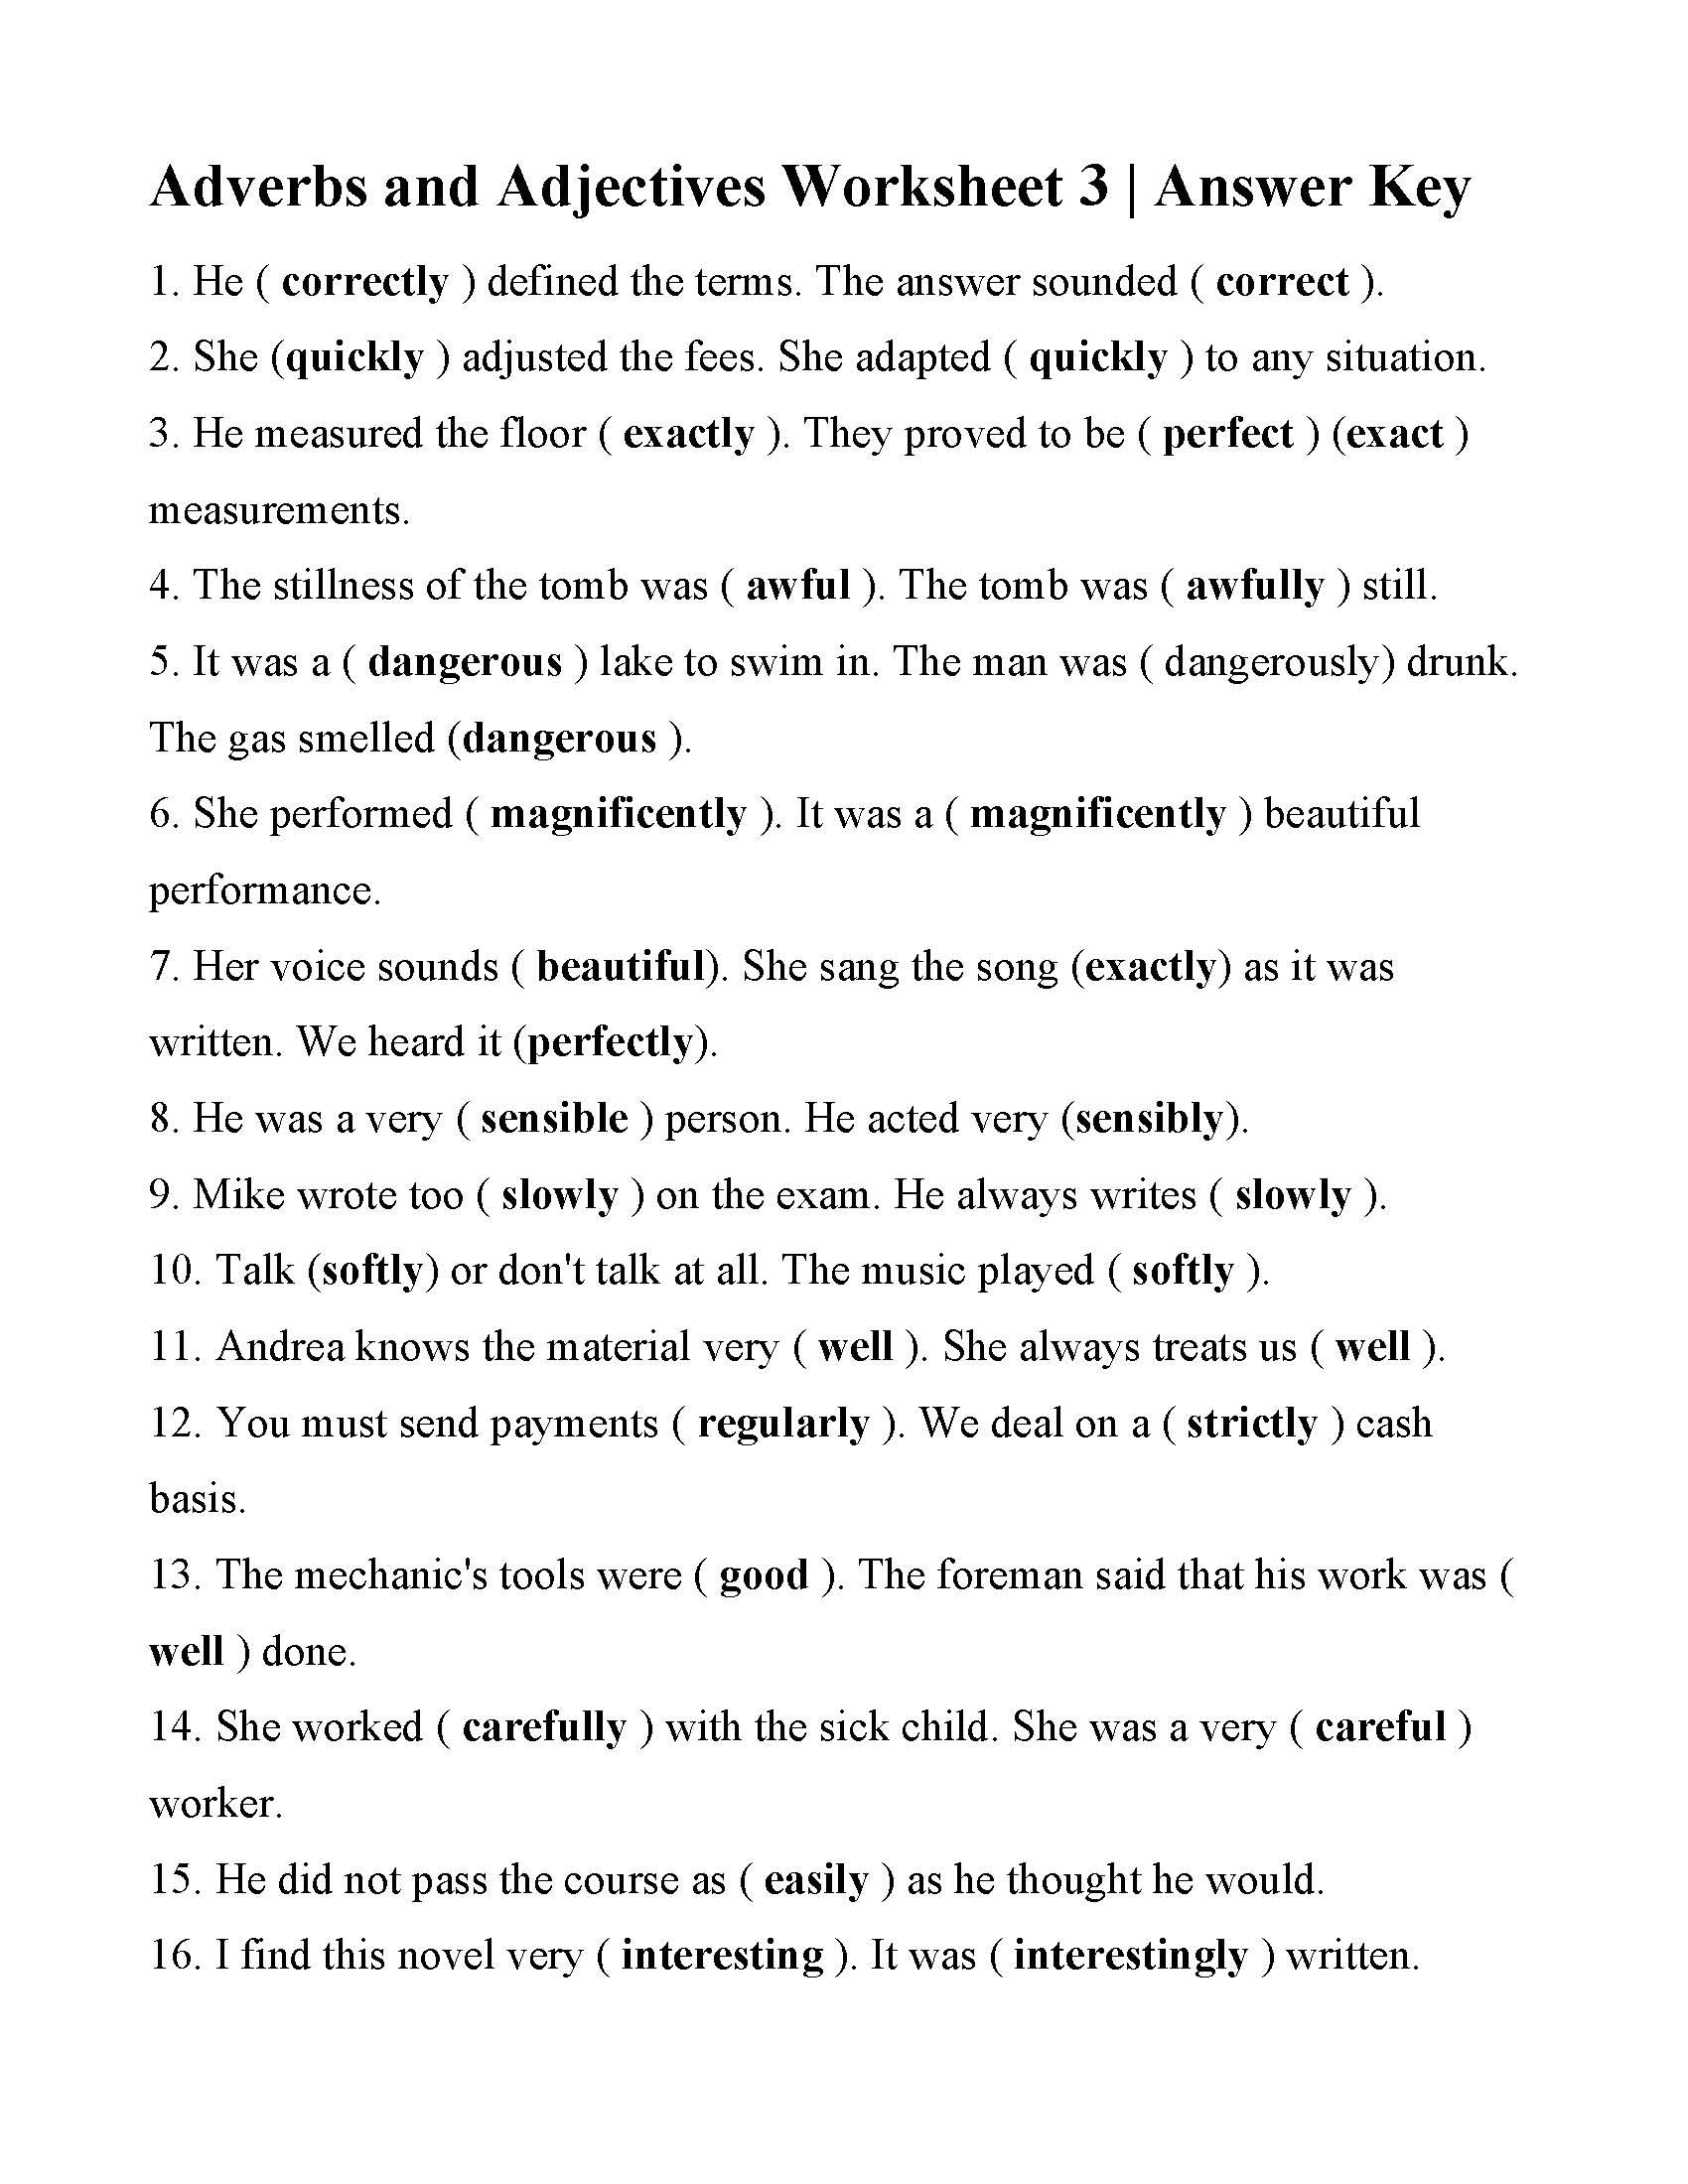 Adverbs And Adjectives Worksheet 3  Answers For Adjective And Adverb Worksheets With Answer Key